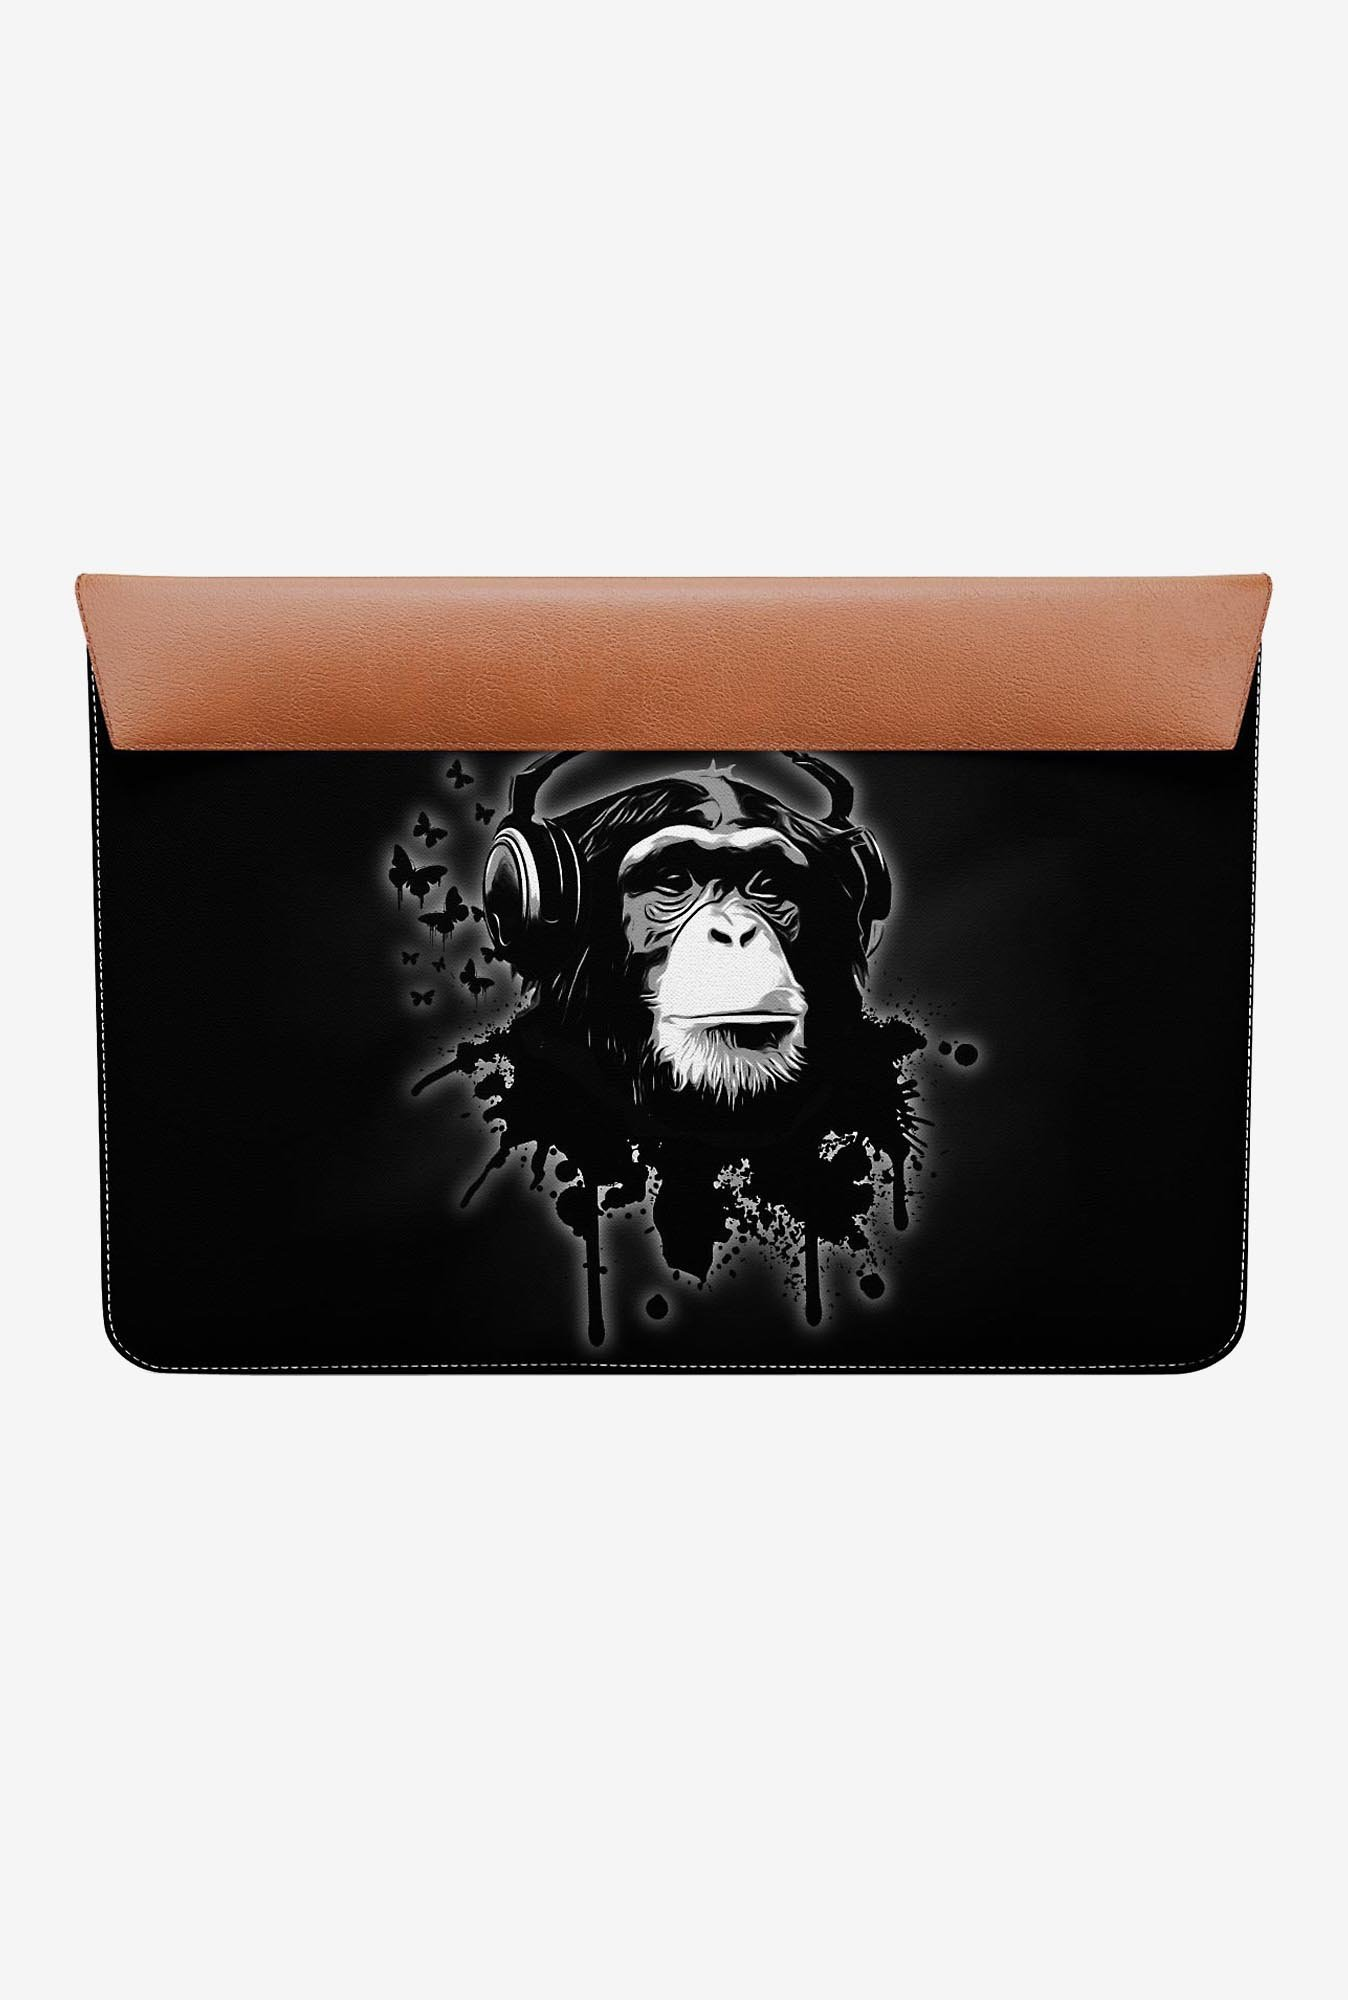 DailyObjects Monkey Business MacBook Pro 15 Envelope Sleeve